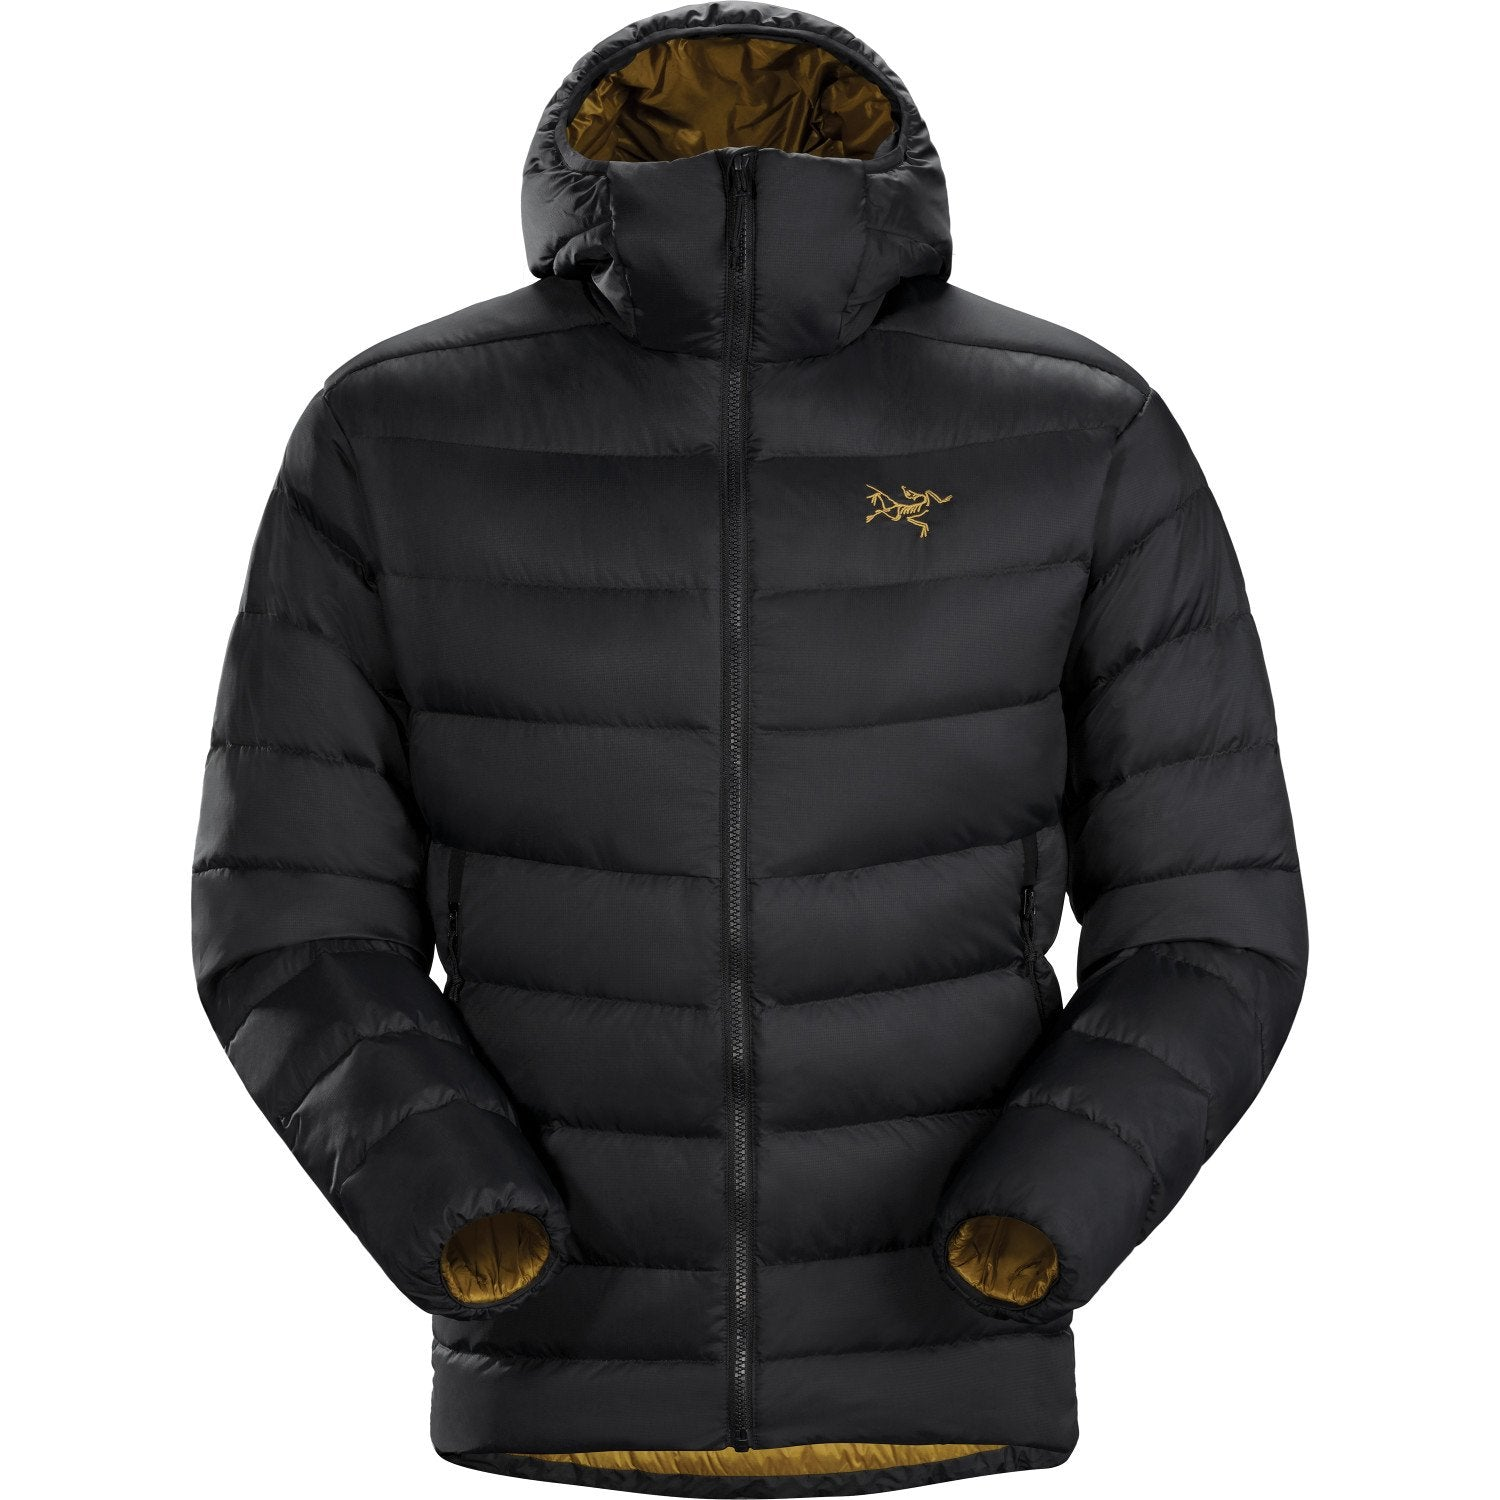 Arc'Teryx Thorium AR Hoody in Black colour. Front View shown fully zipped up